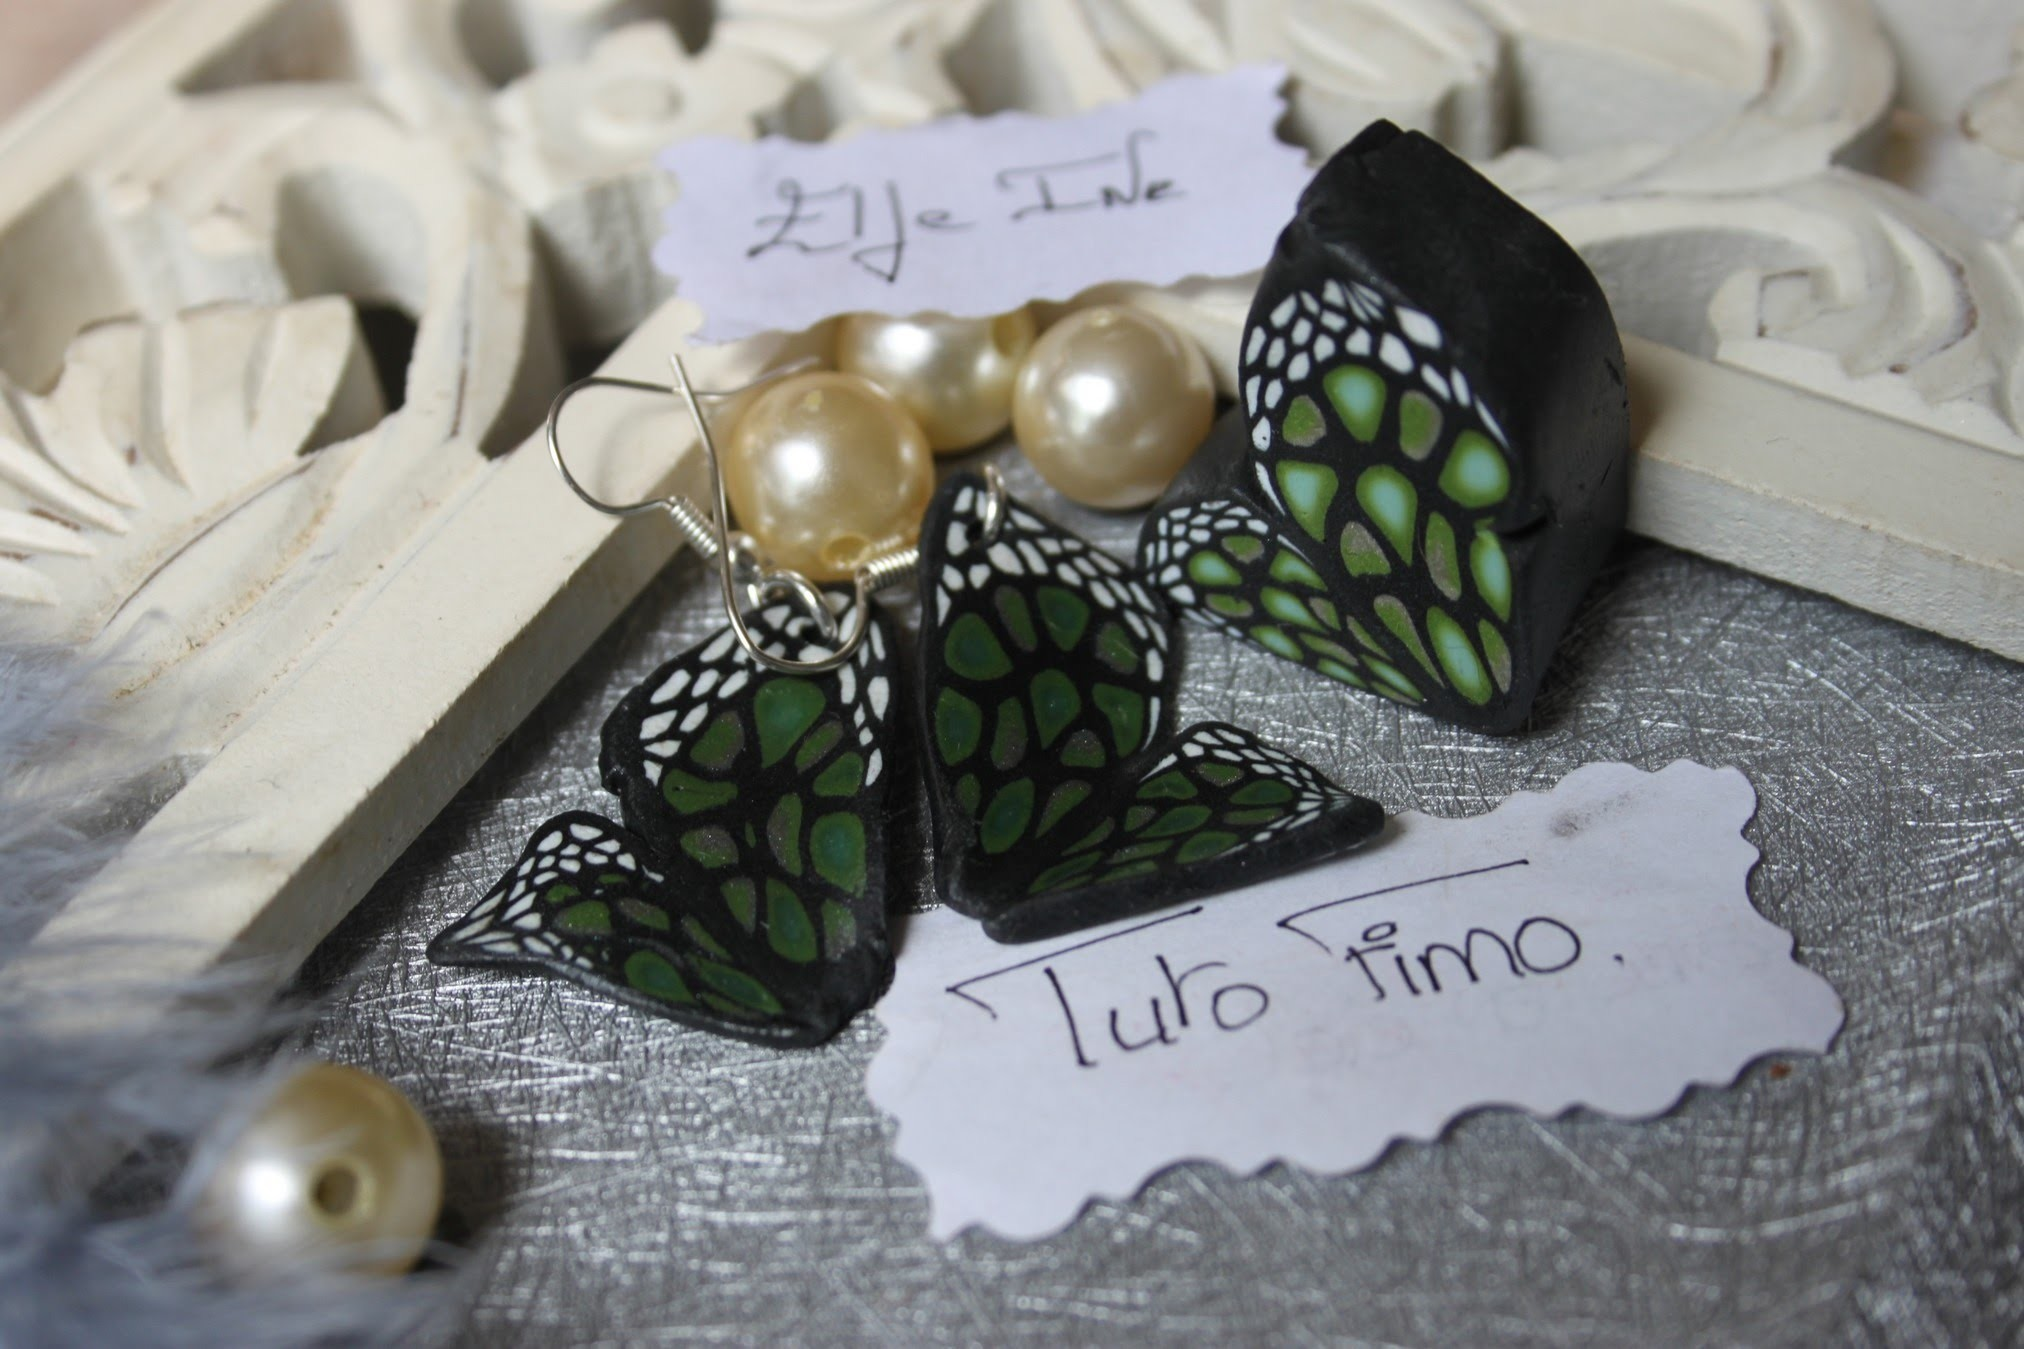 [♥✿ Tuto Fimo : la cane papillon ✿♥] ~ [♥✿ Polymer Clay Tutorial : Cane Butterfly ✿♥]